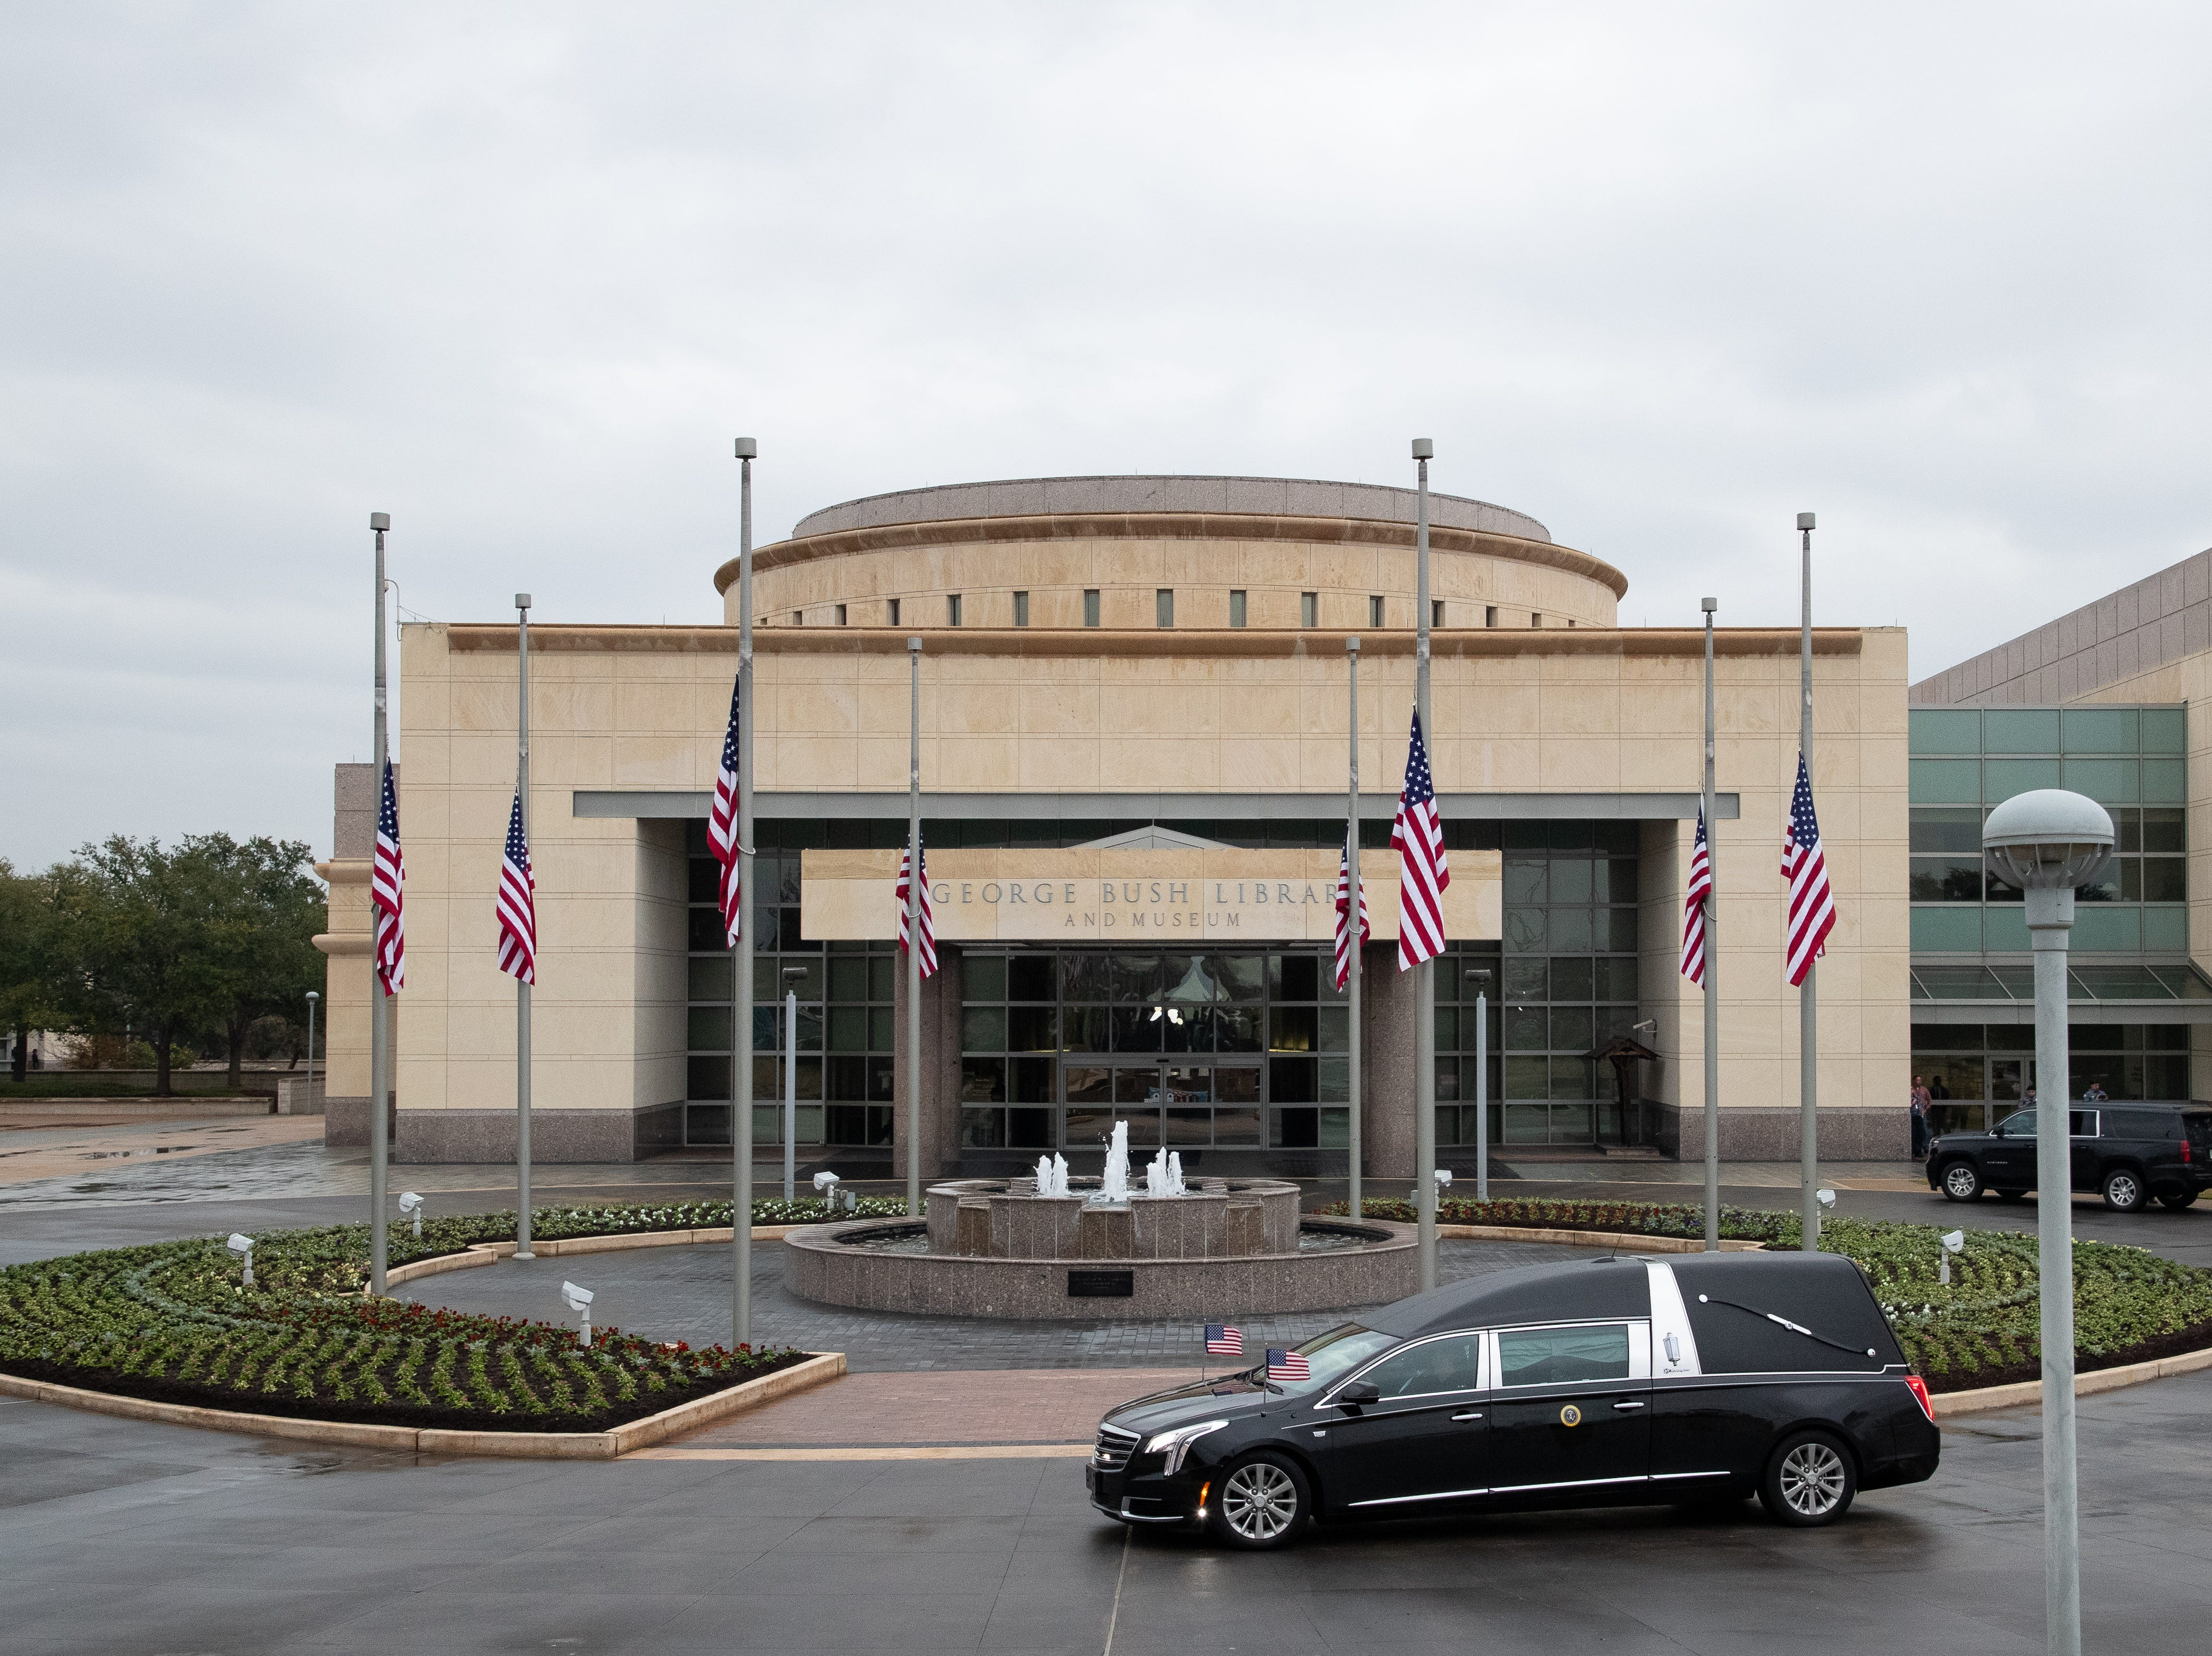 The Hearse carrying the 41st President of the United States, George H.W. Bush, arrives at the George Bush Presidential Library & Museum in College Station on Thursday, Dec 6, 2018.